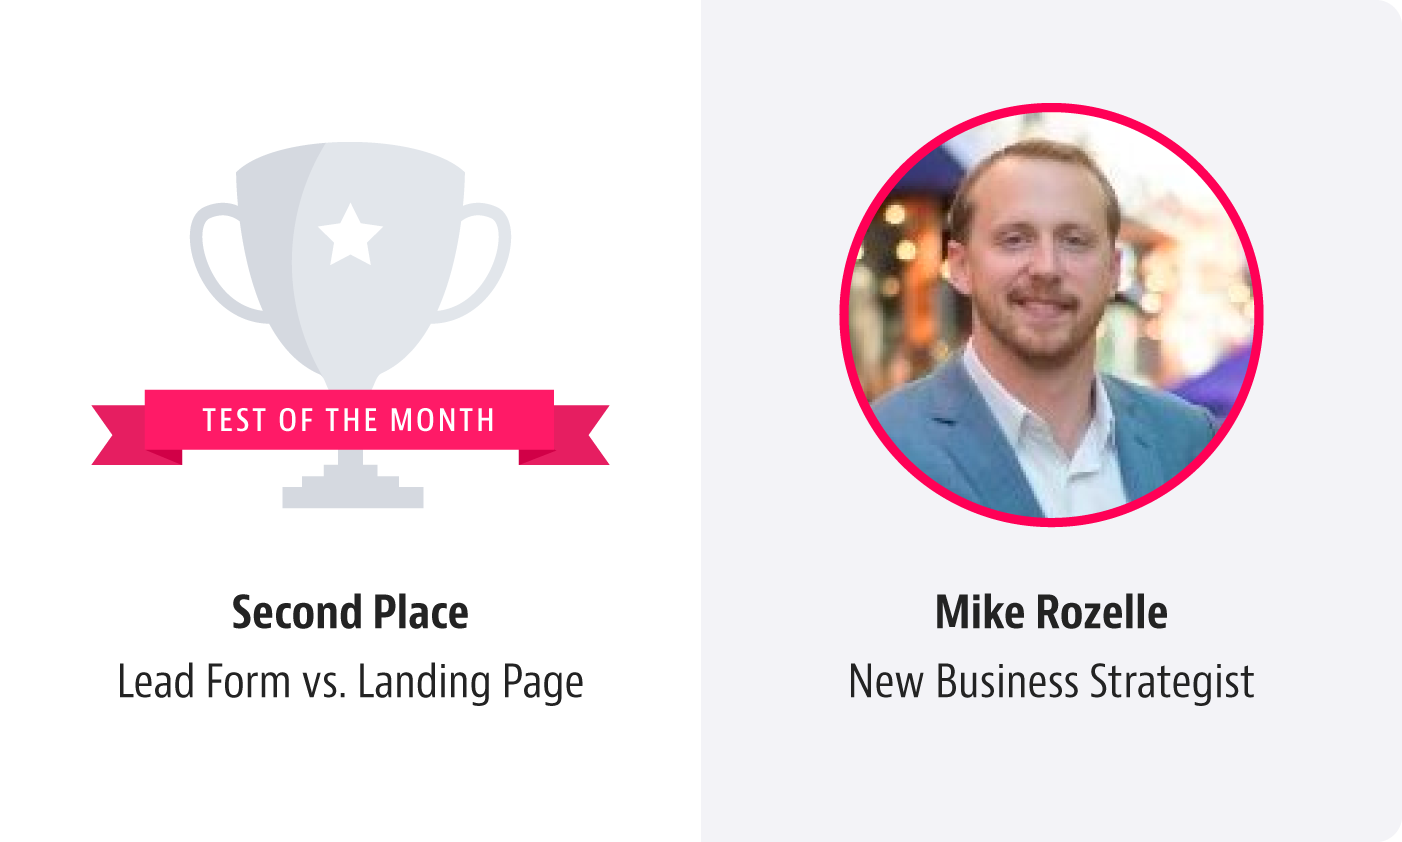 ladder growth test of the month lead form vs landing page mike rozelle